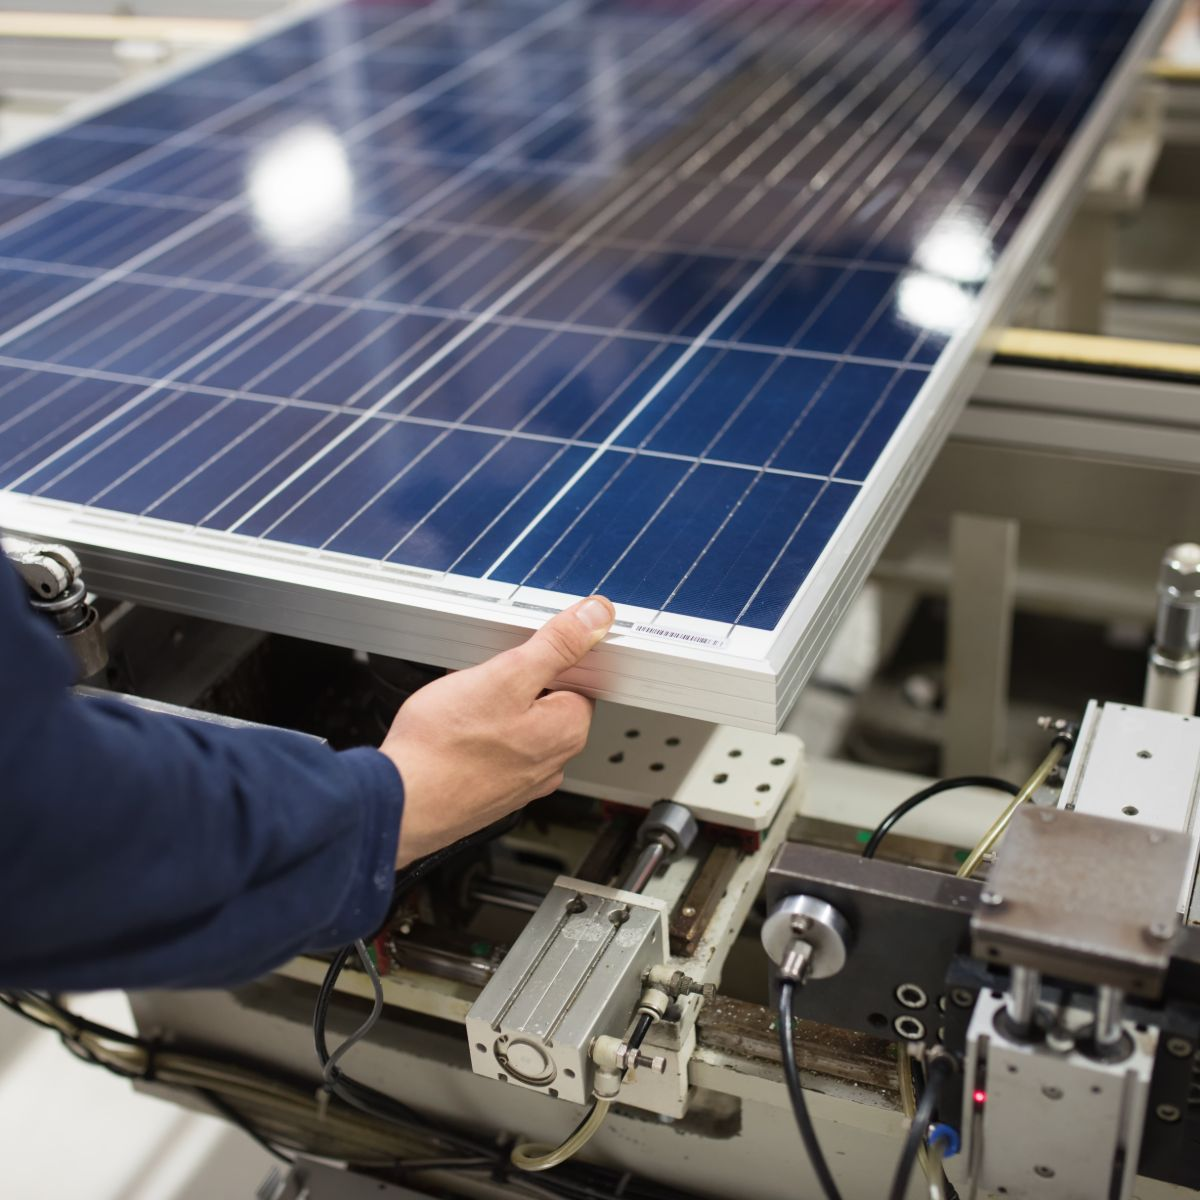 Factory Components of a solar power system